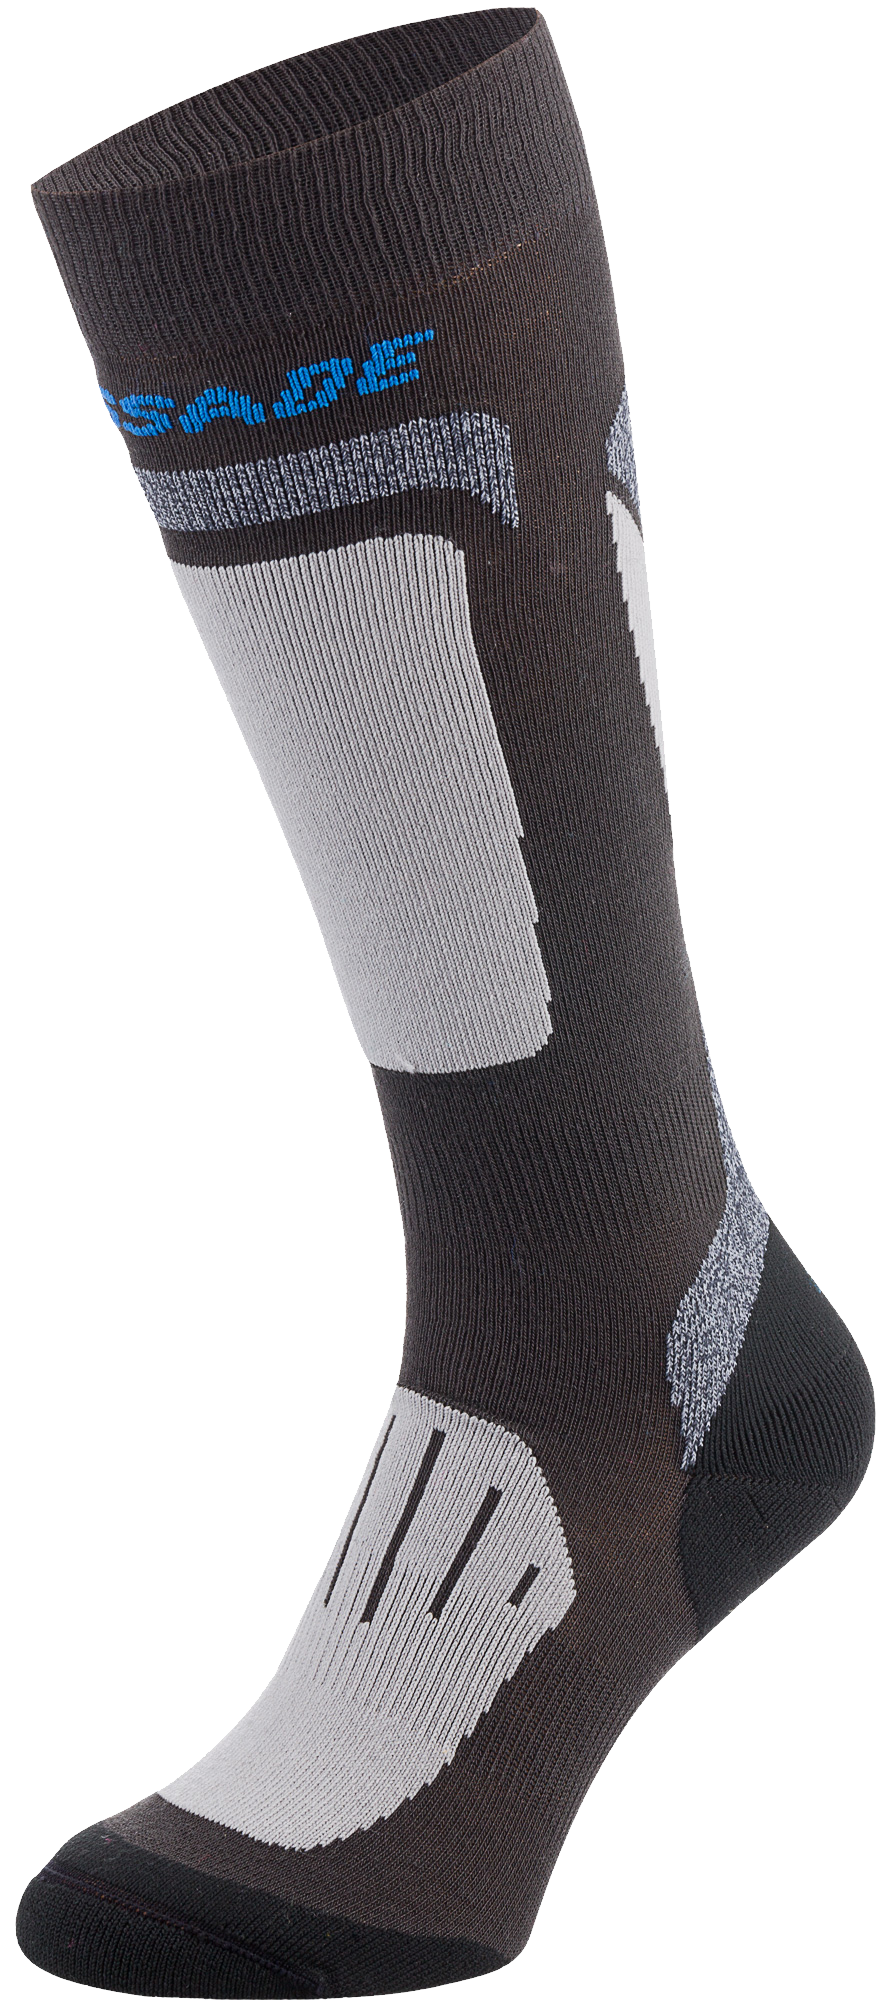 Sports Socks PNG Image